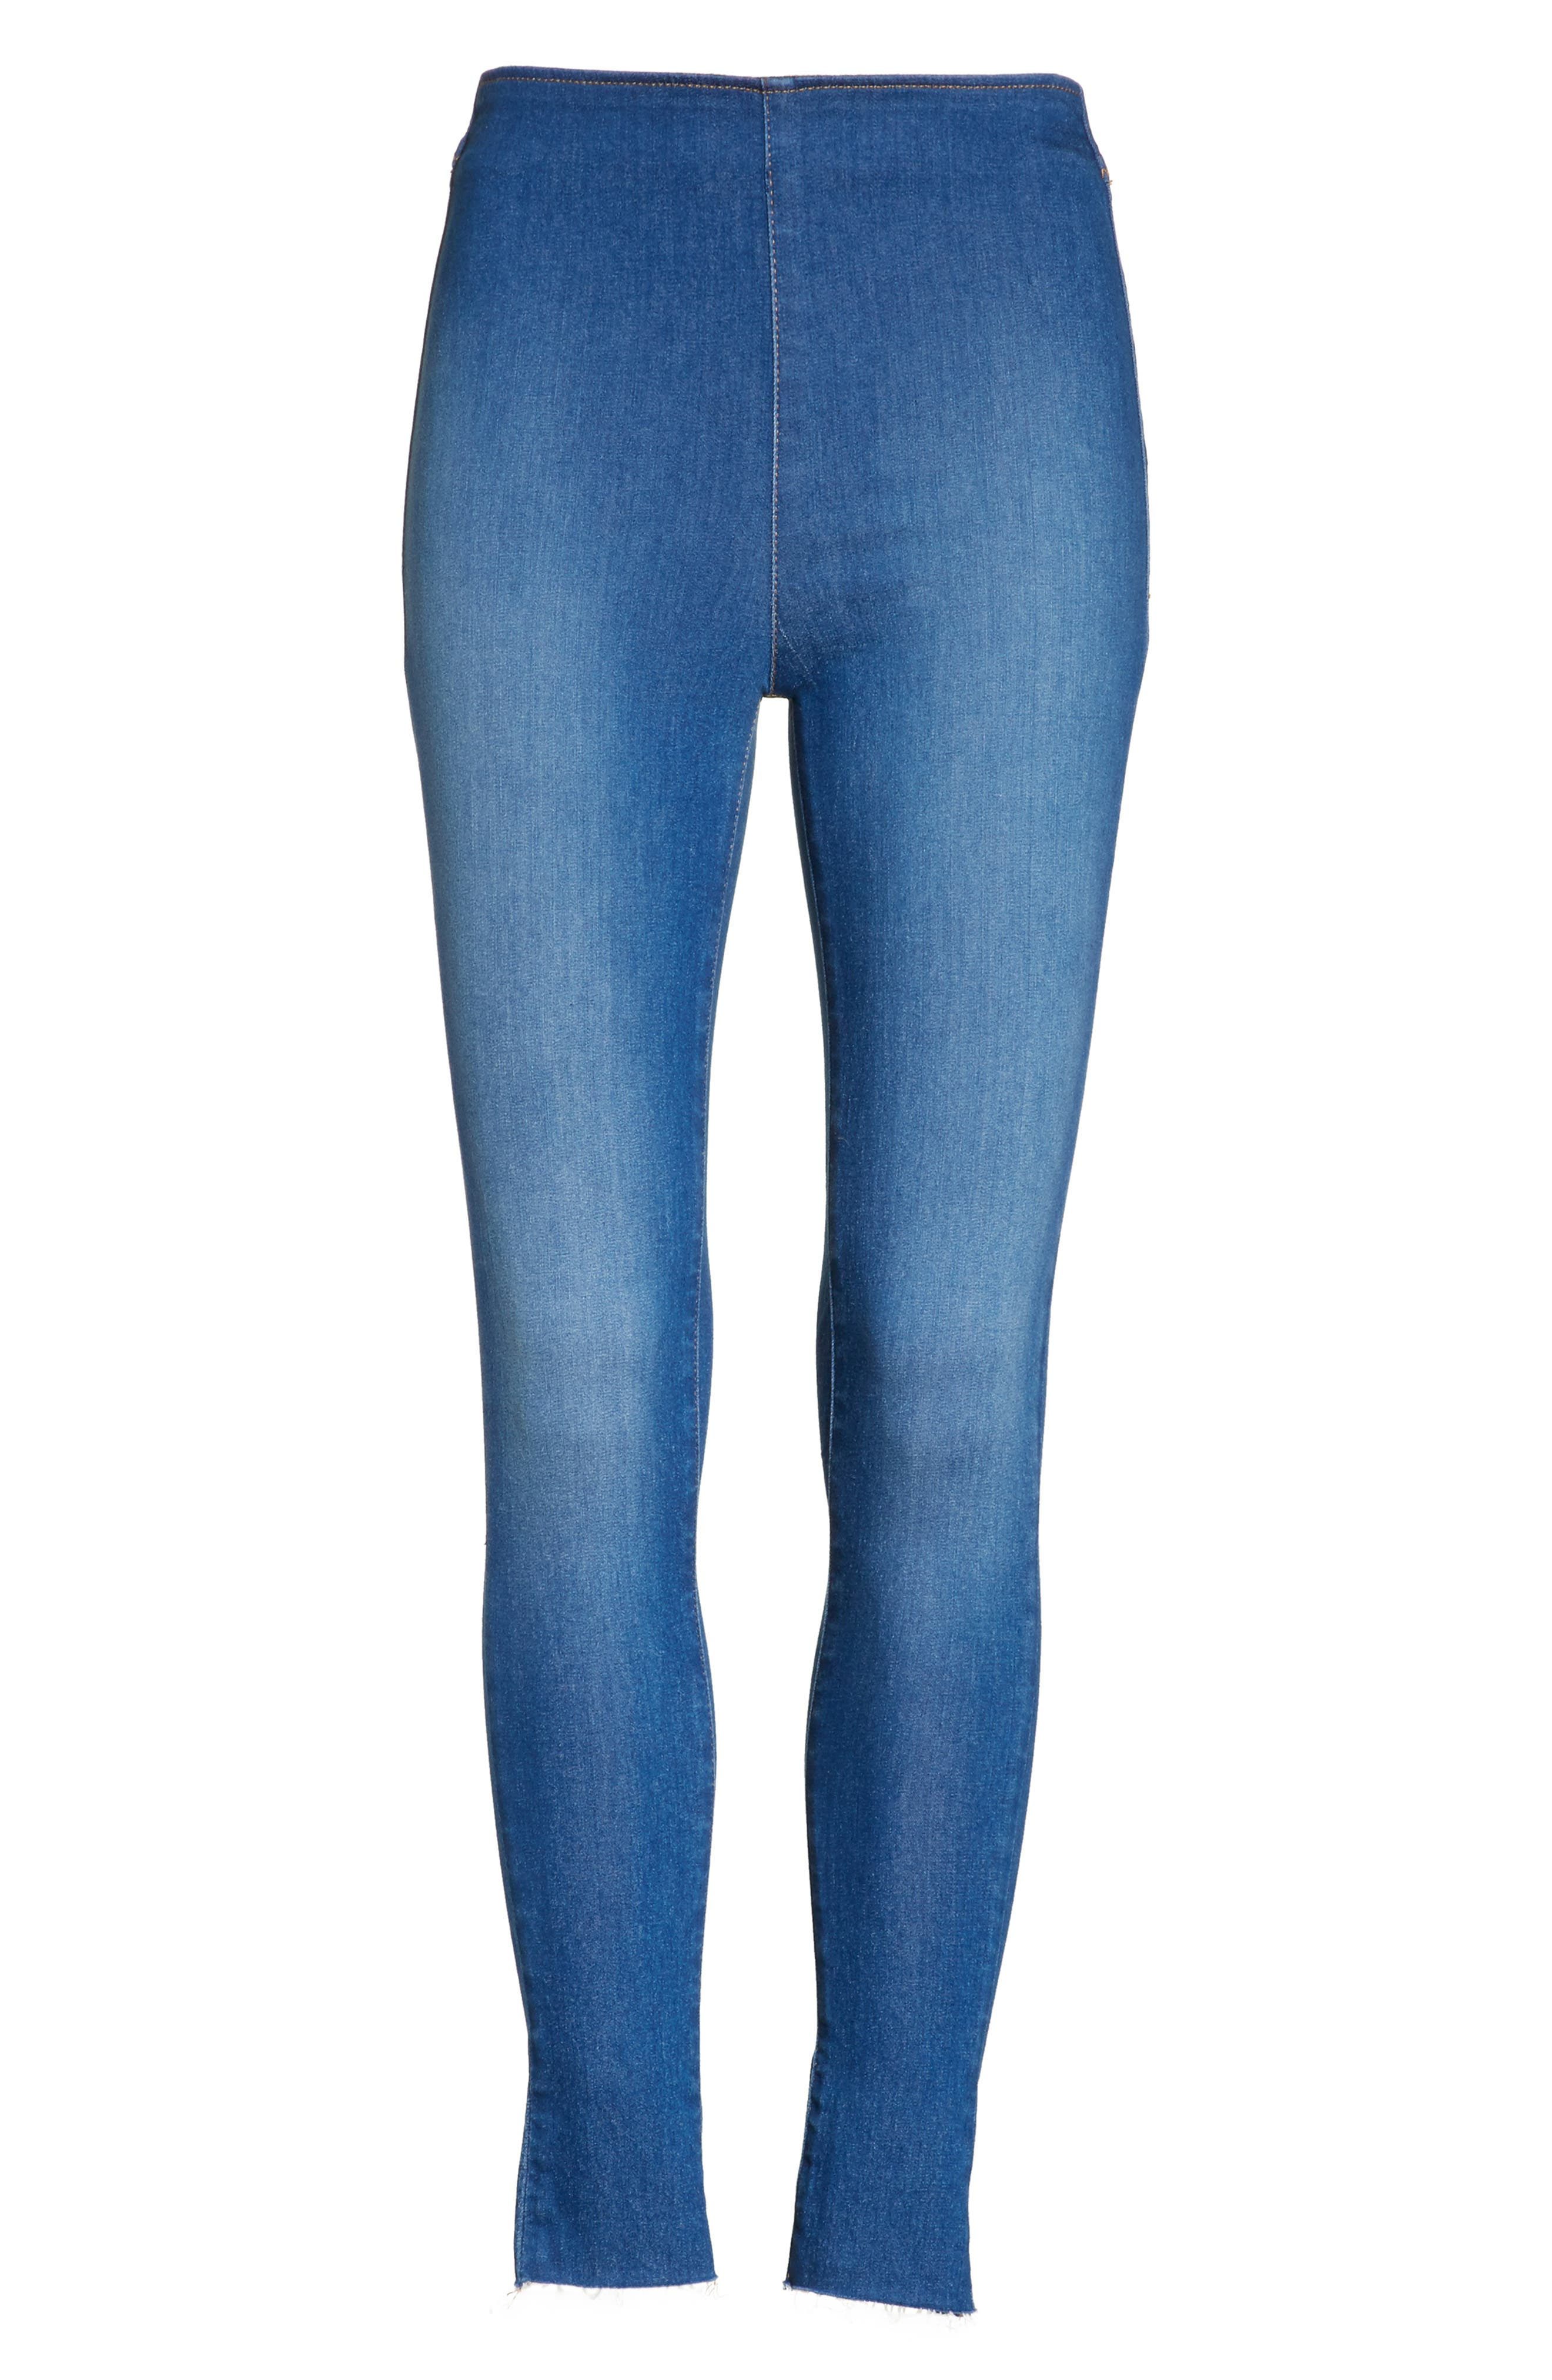 We the Free by Free People Easy Goes It Denim Leggings,                             Alternate thumbnail 6, color,                             400